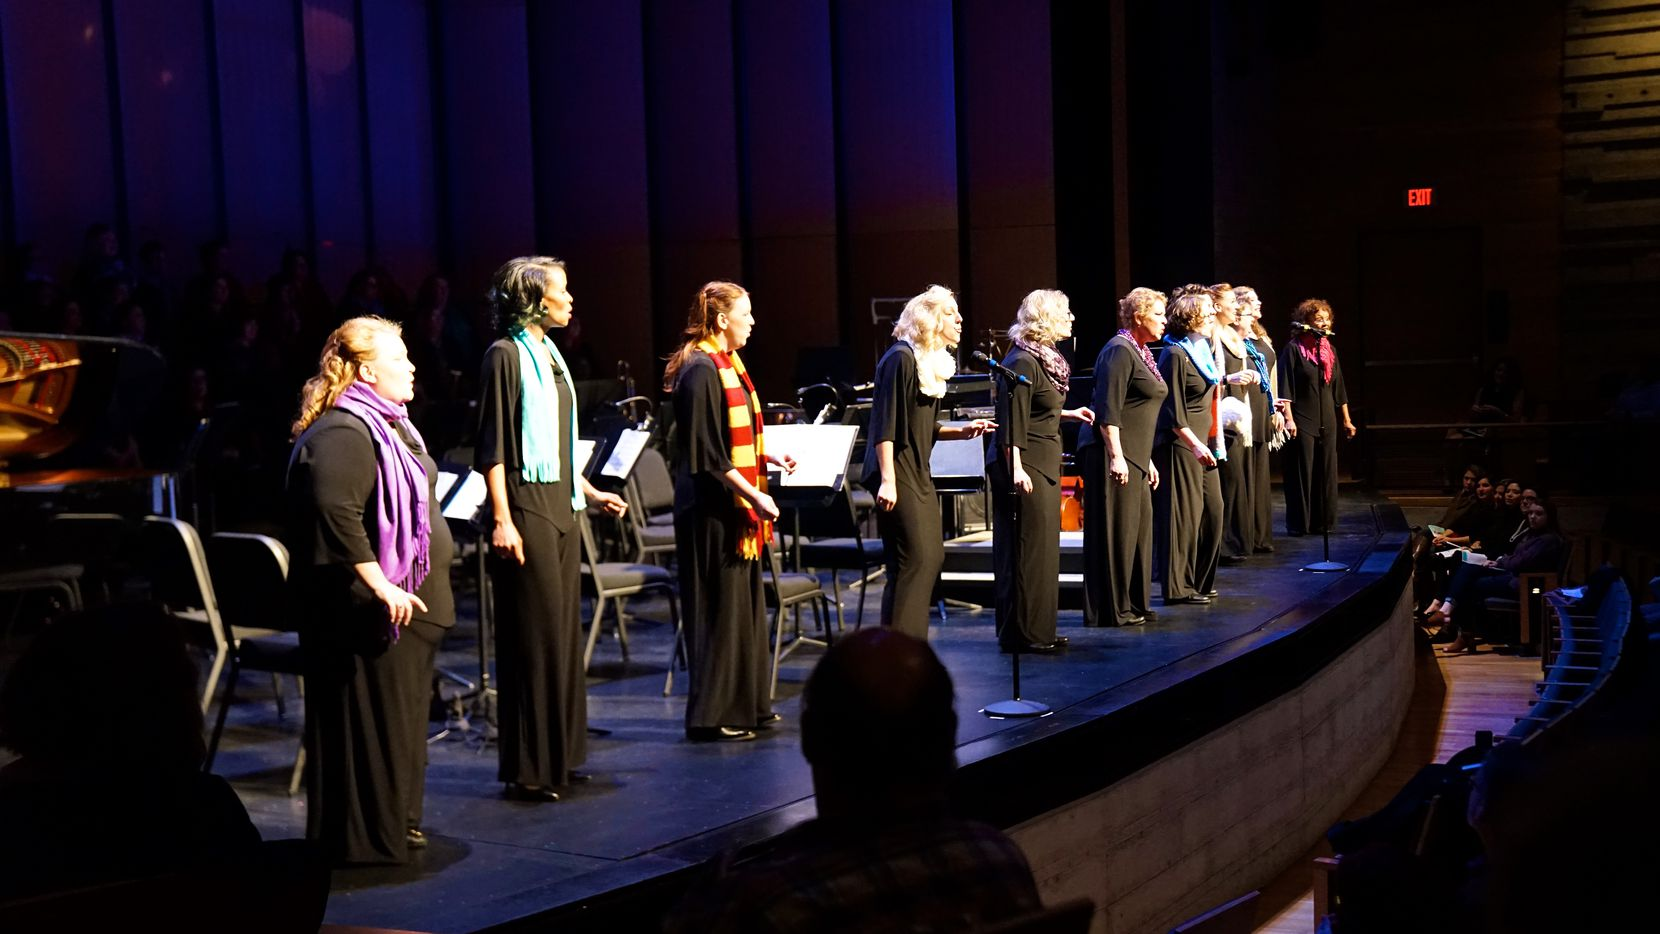 Member of the Dallas Women's Chorus perform at Moody Performance Hall.